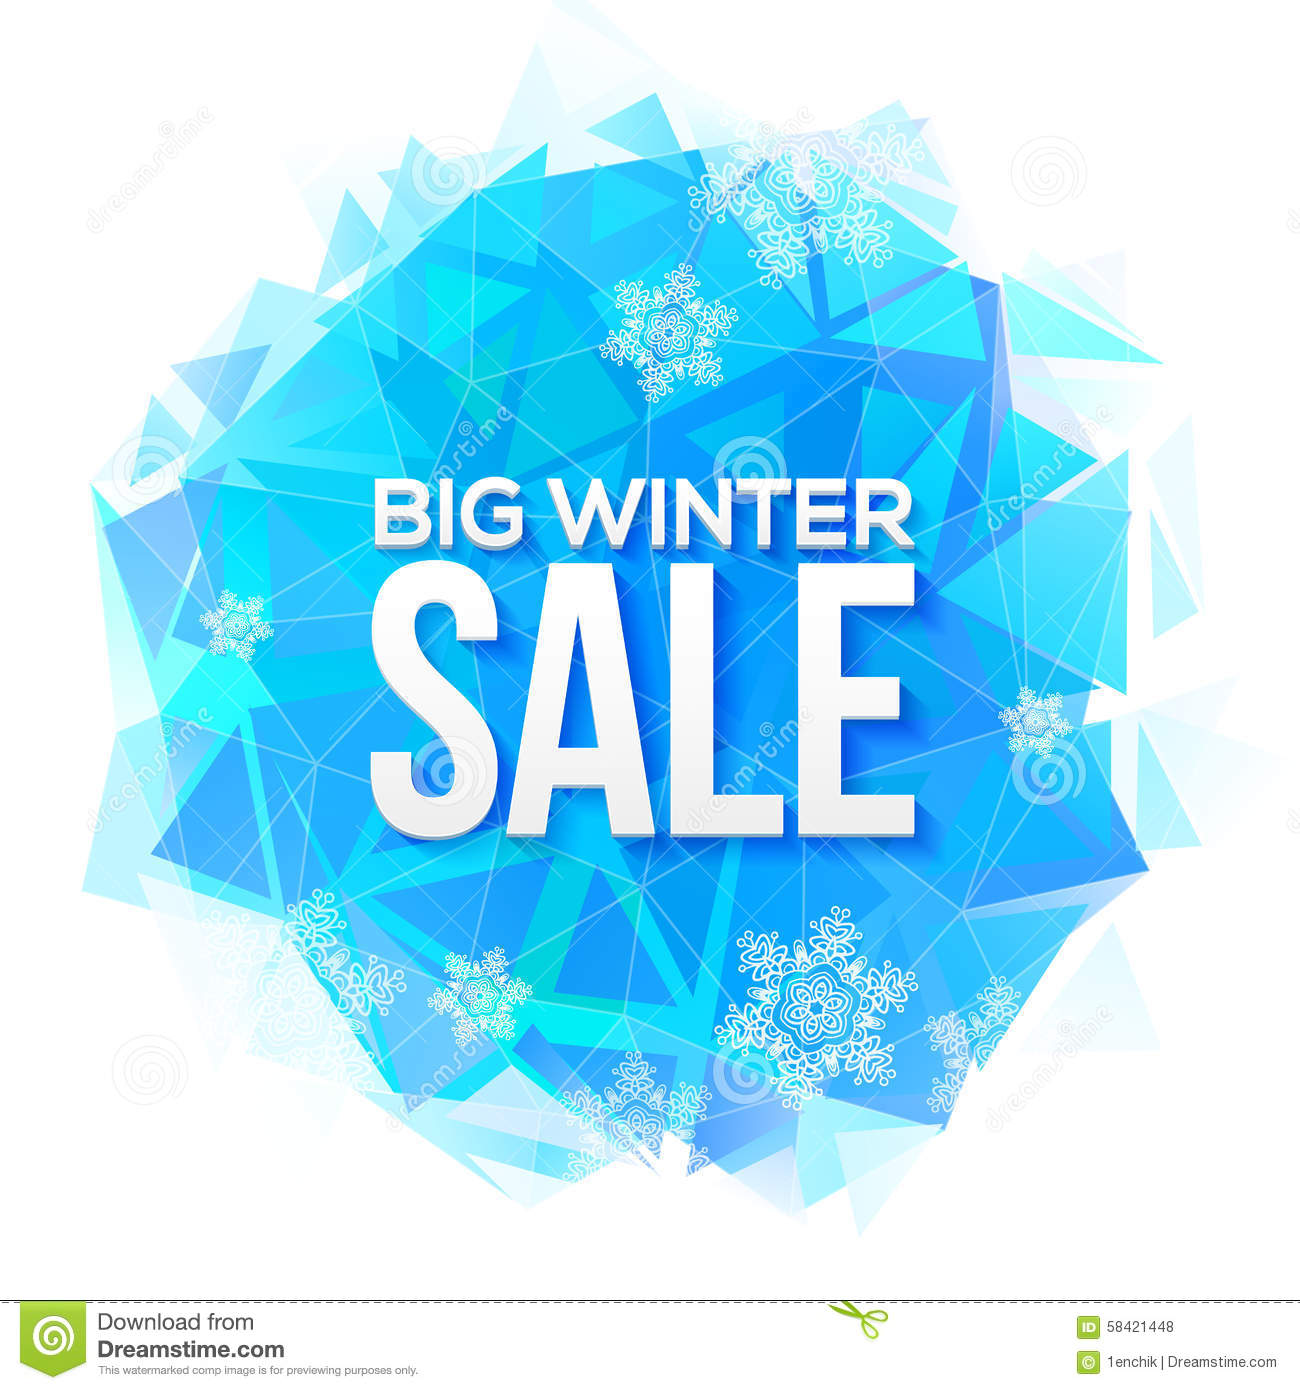 how to prepare for a winter sale